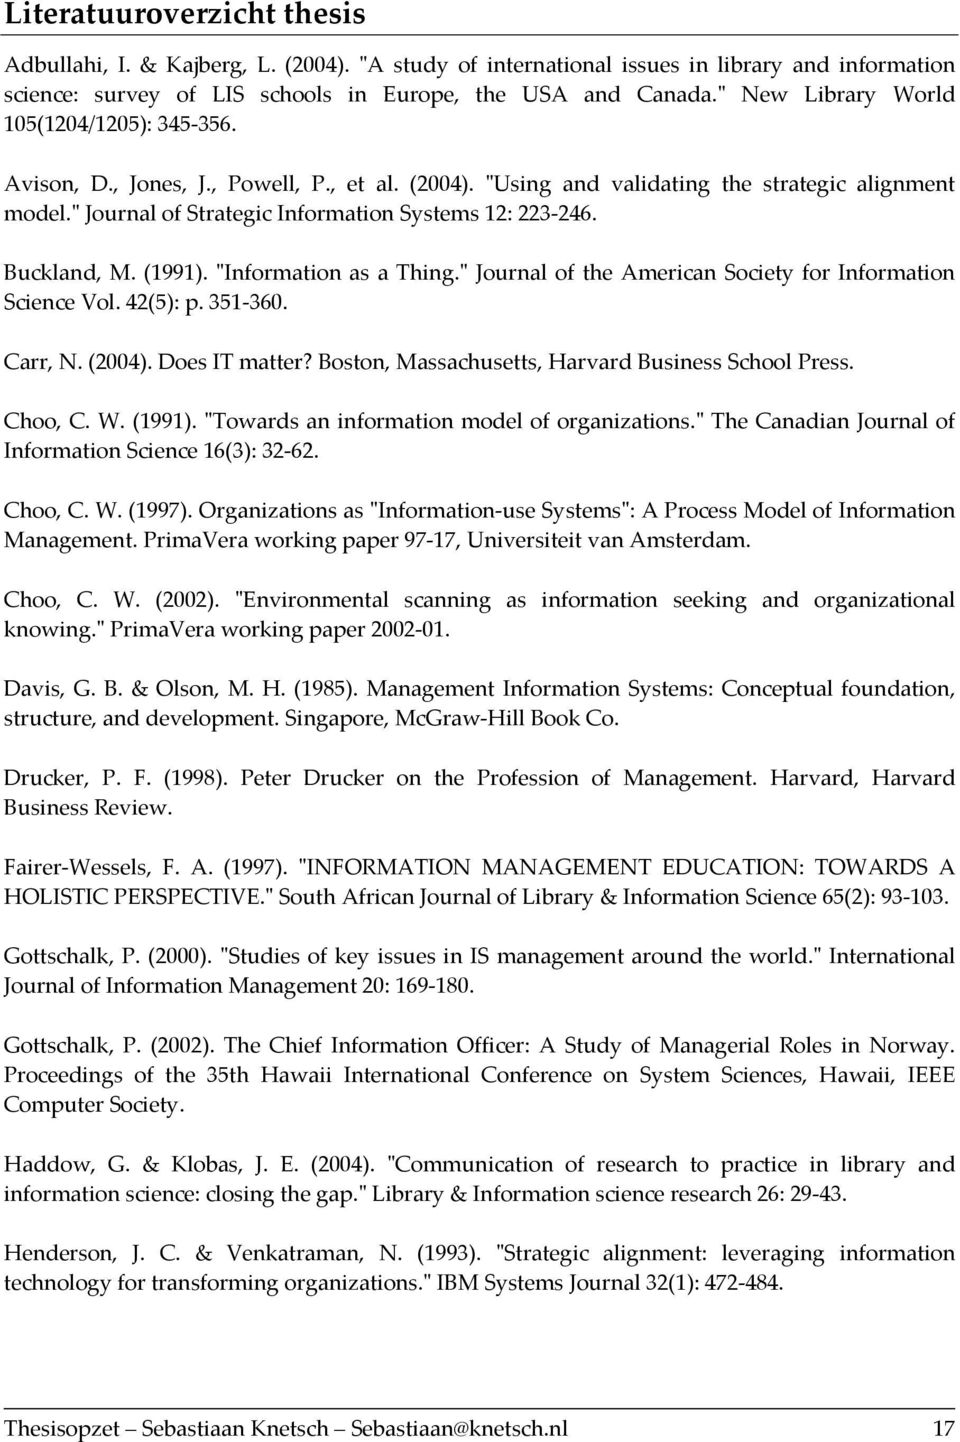 ʺ Journal of Strategic Information Systems 12: 223 246. Buckland, M. (1991). ʺInformation as a Thing.ʺ Journal of the American Society for Information Science Vol. 42(5): p. 351 360. Carr, N. (2004).